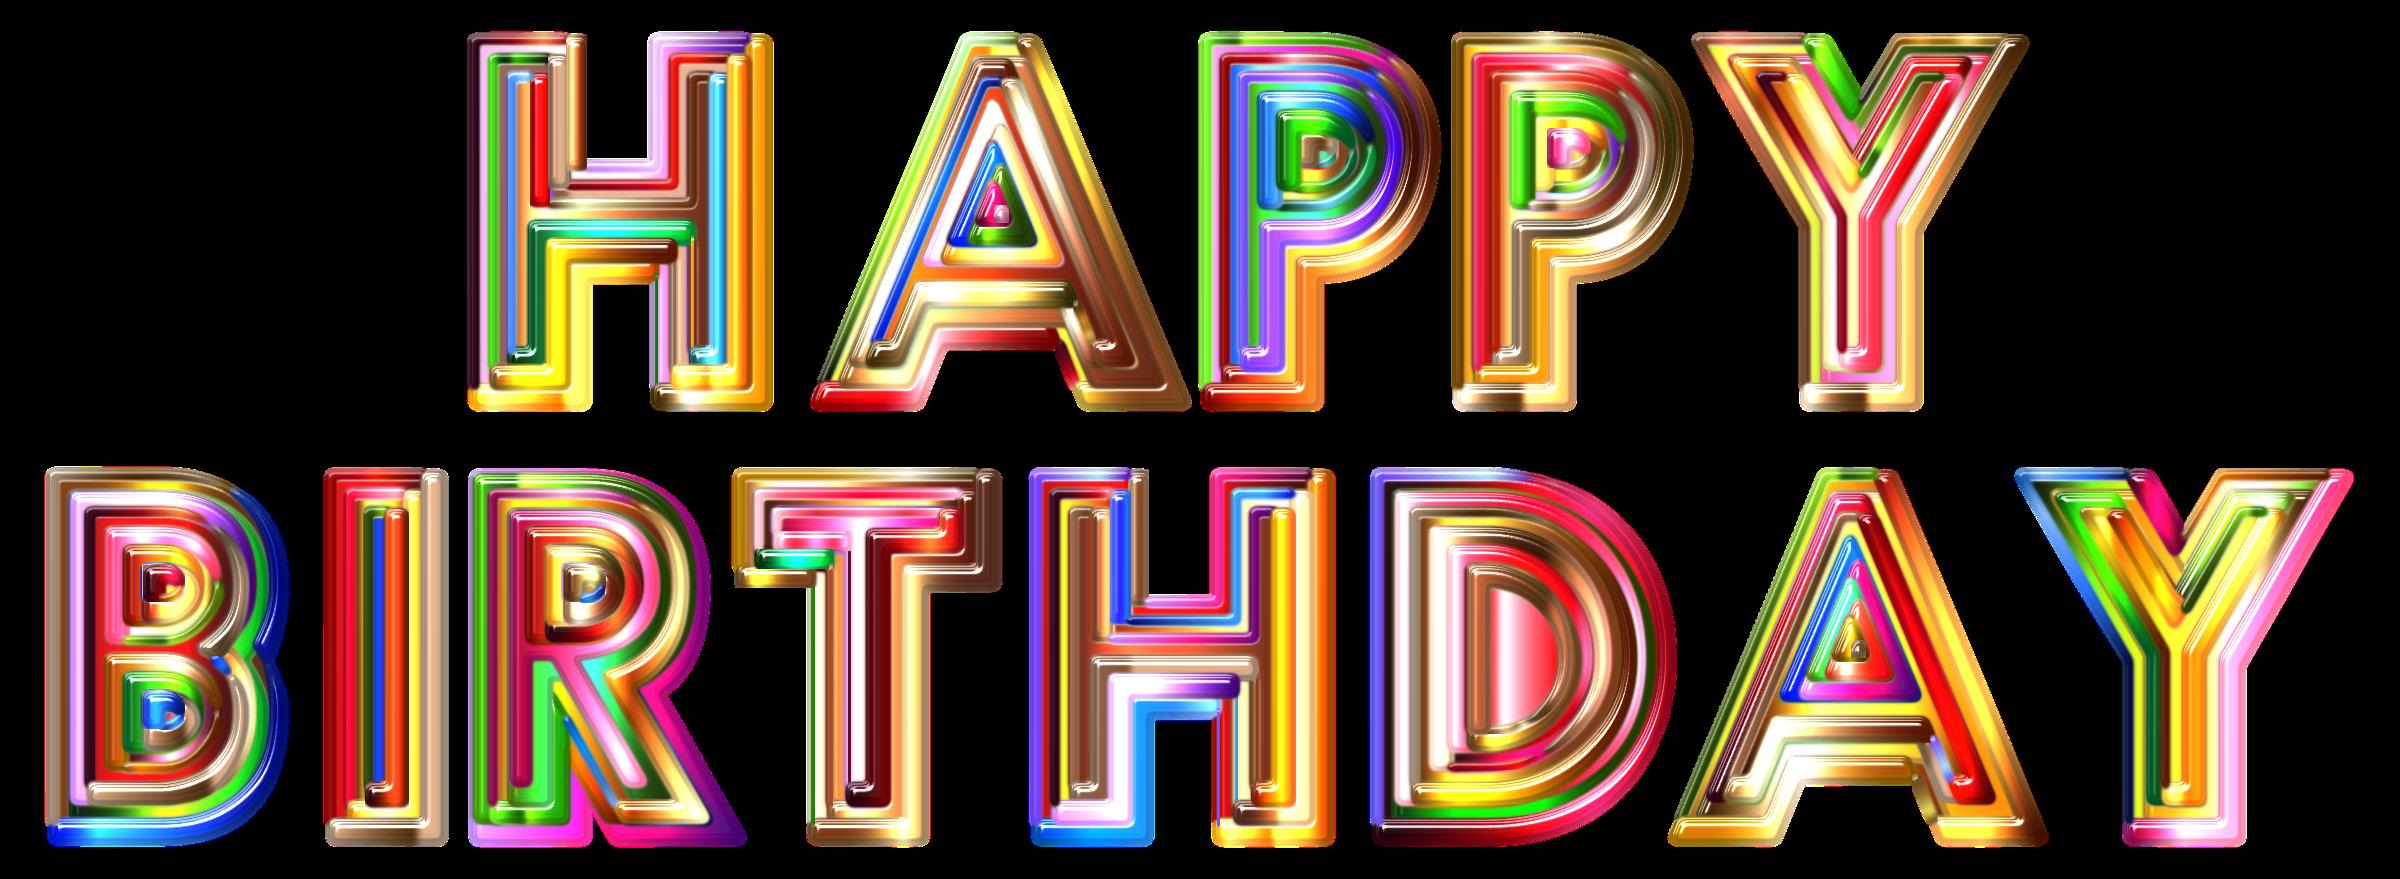 happy birthday png background ; happy-birthday-png-26